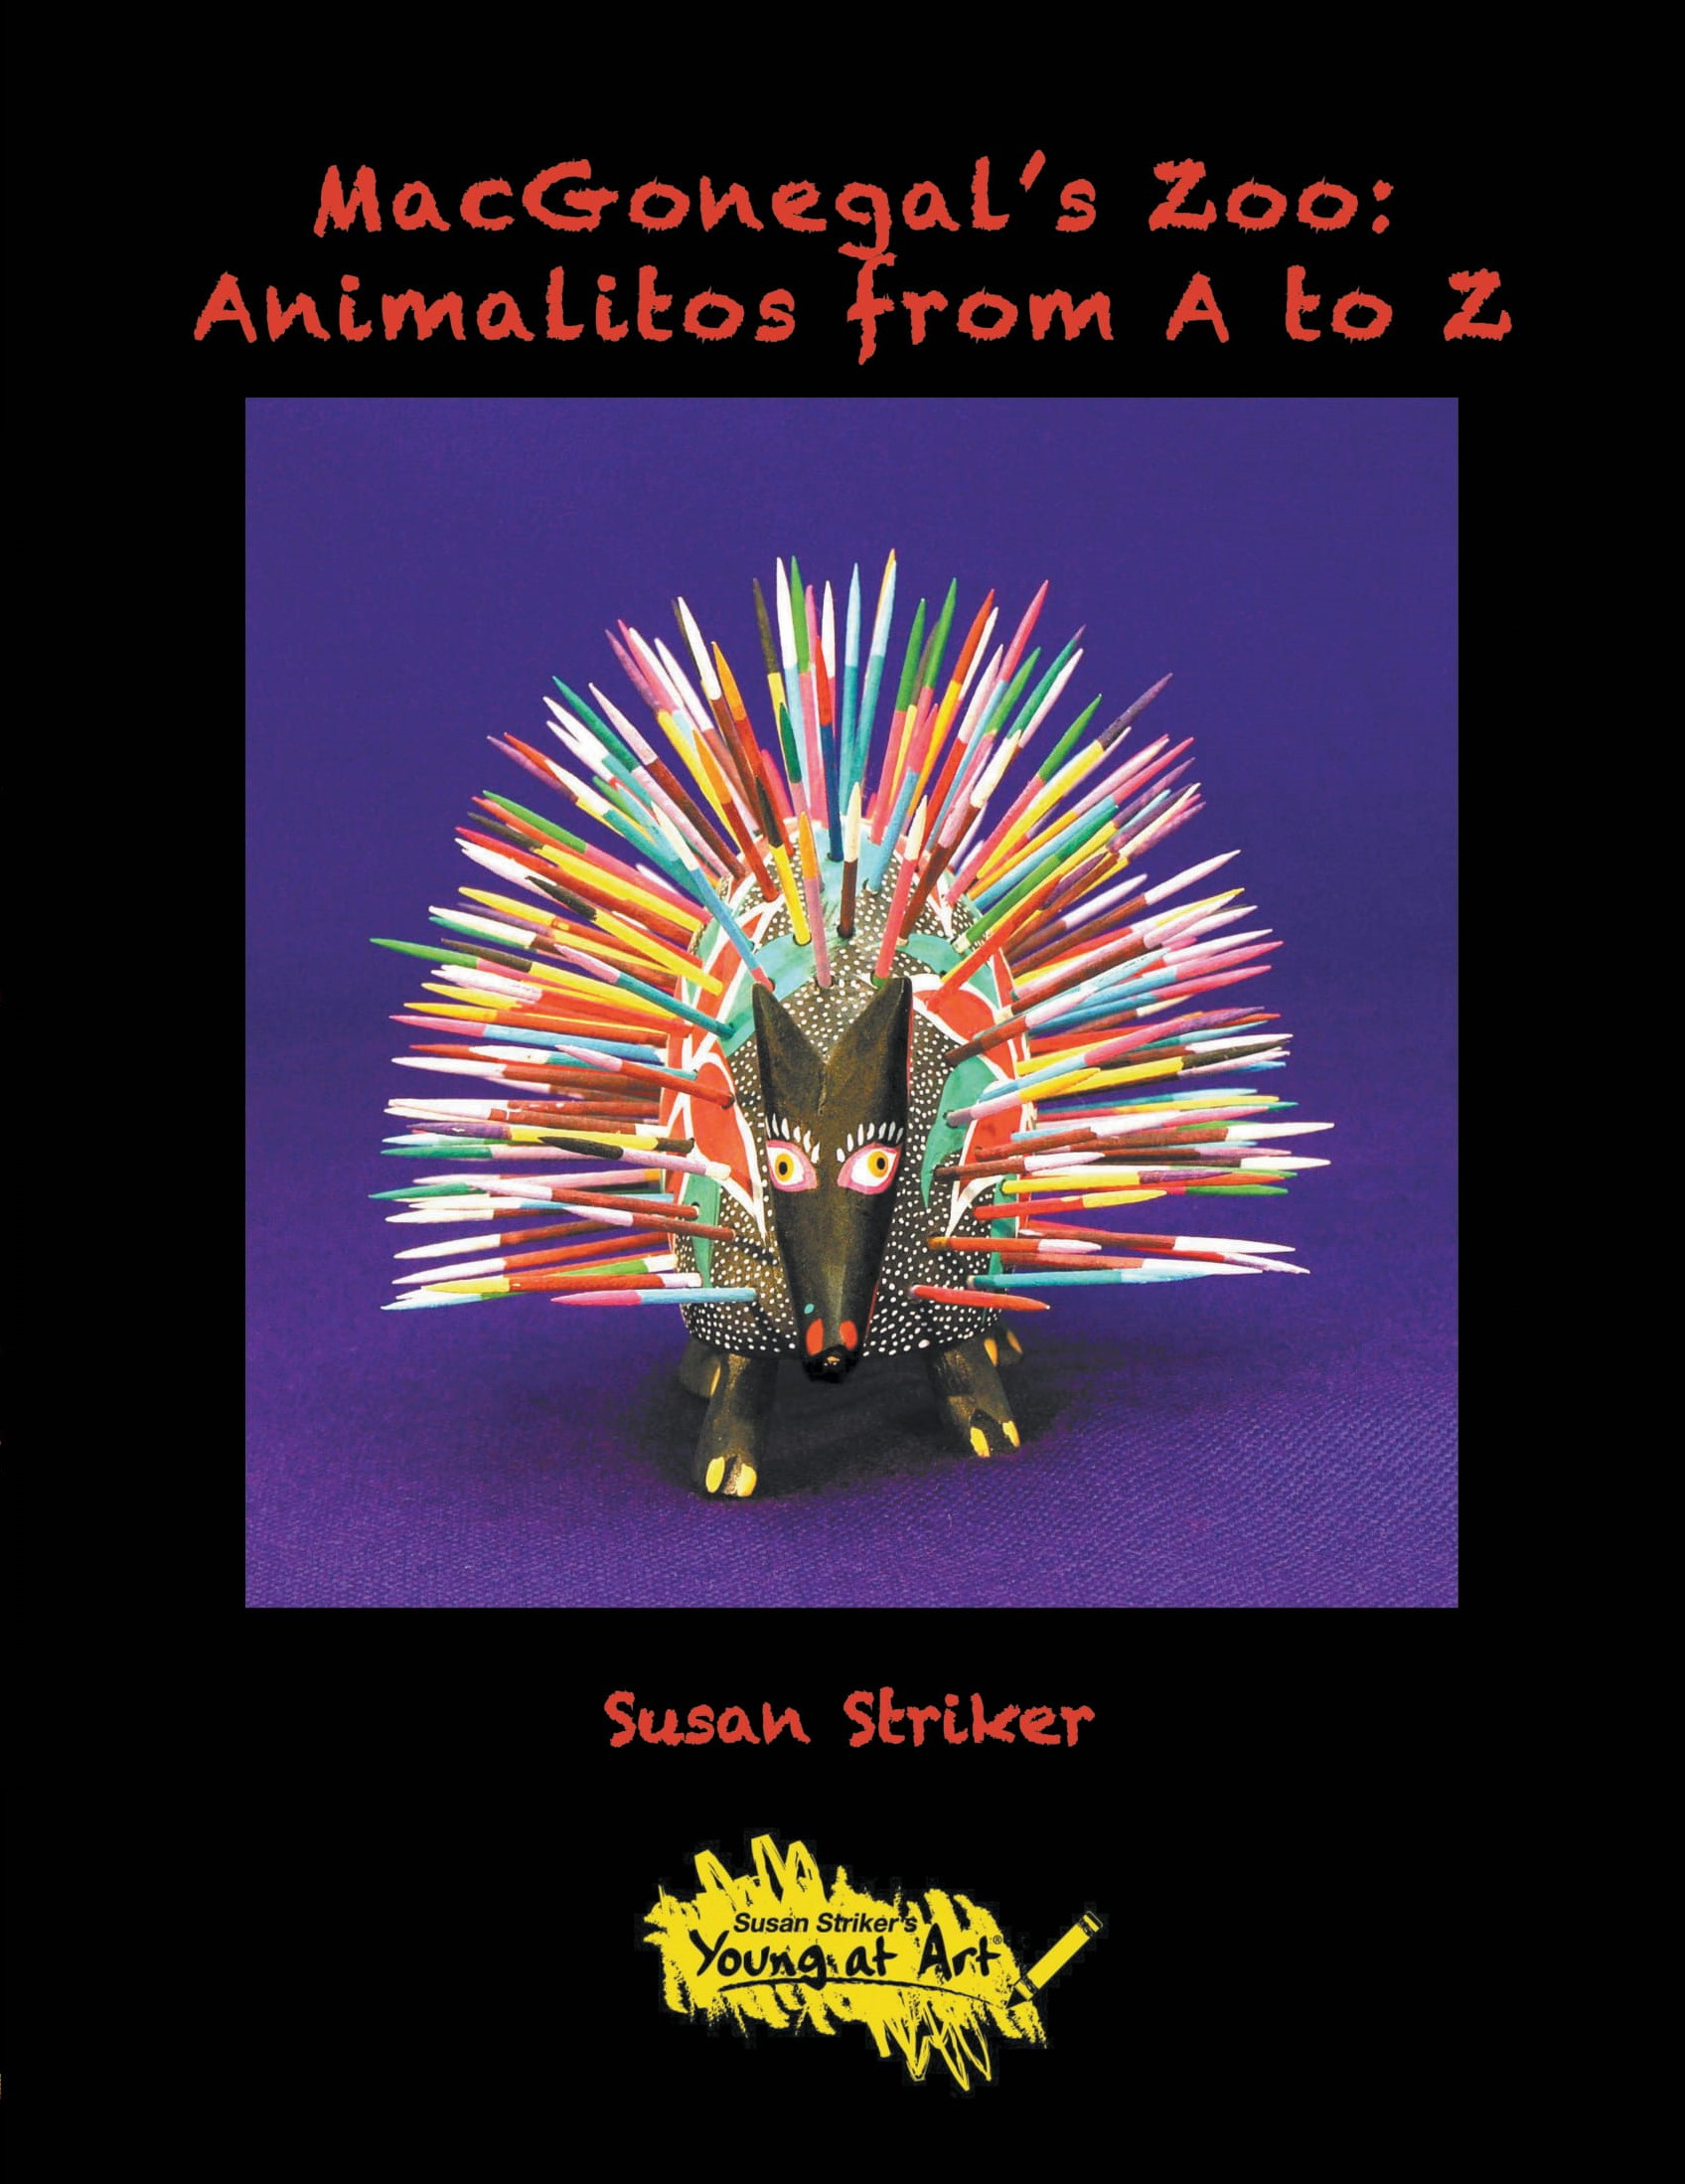 macgonegals zoo_front